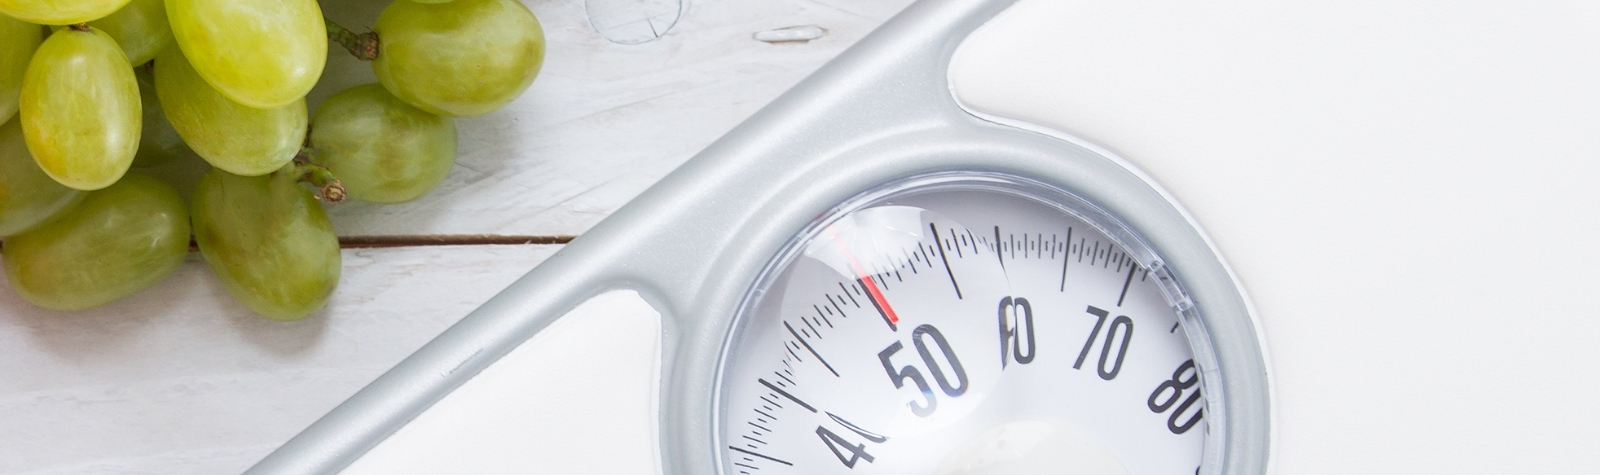 Should You Step Off The Scales?